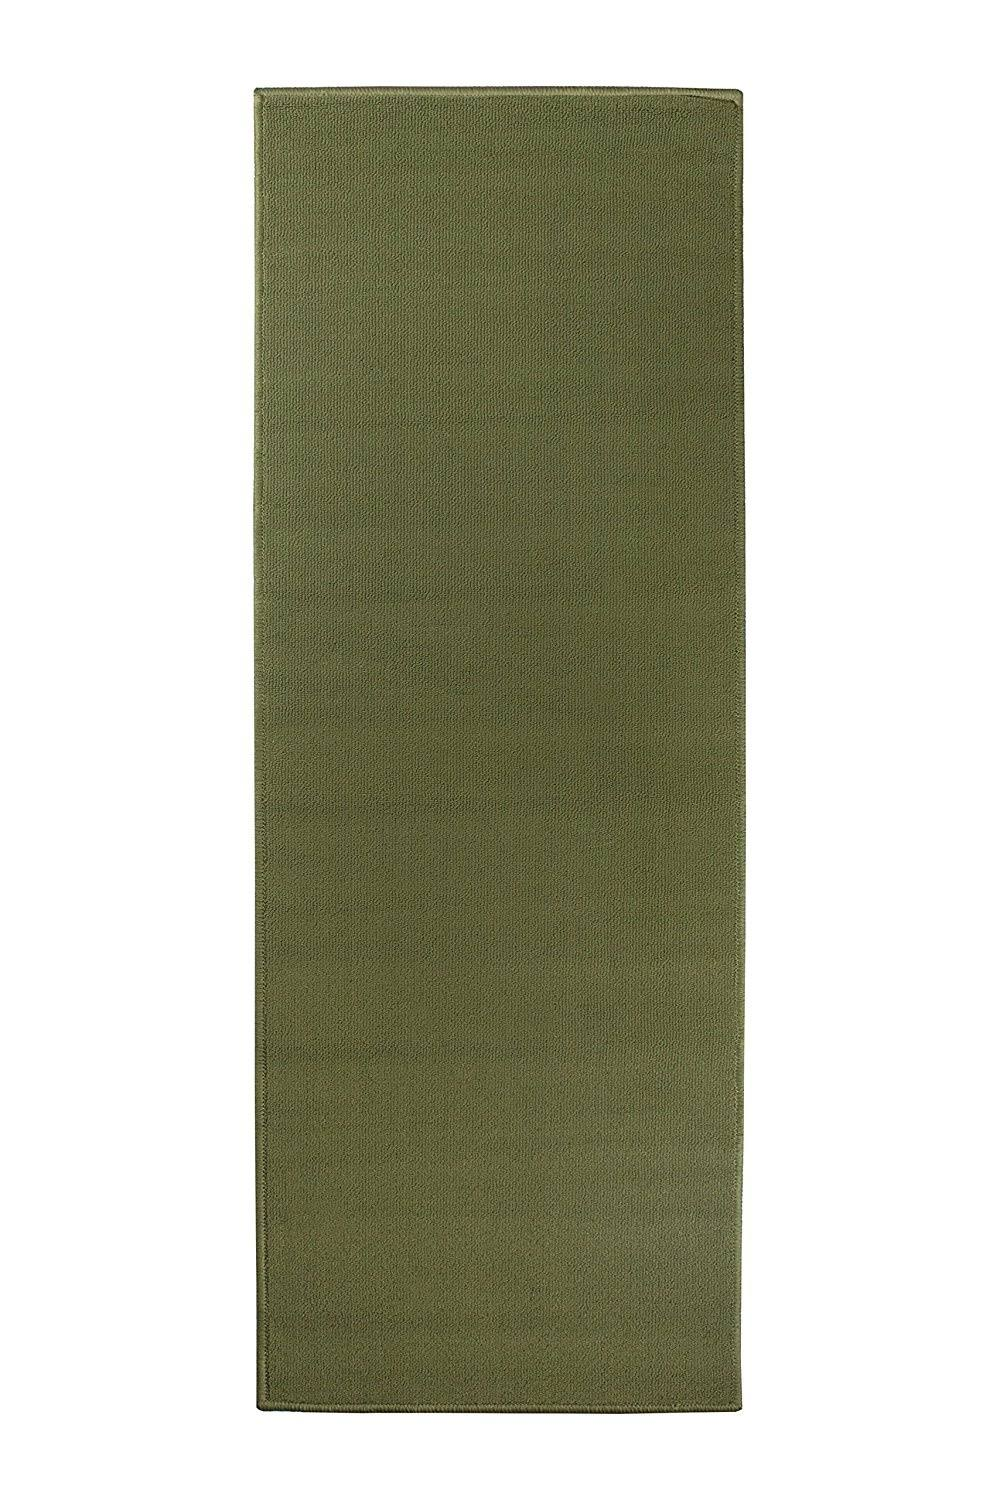 Ritz Accent Door Rug Runner with Non-Slip Latex Backing, 20-inch by 60-Inch Kitchen & Bathroom Runner Rug, Olive Green